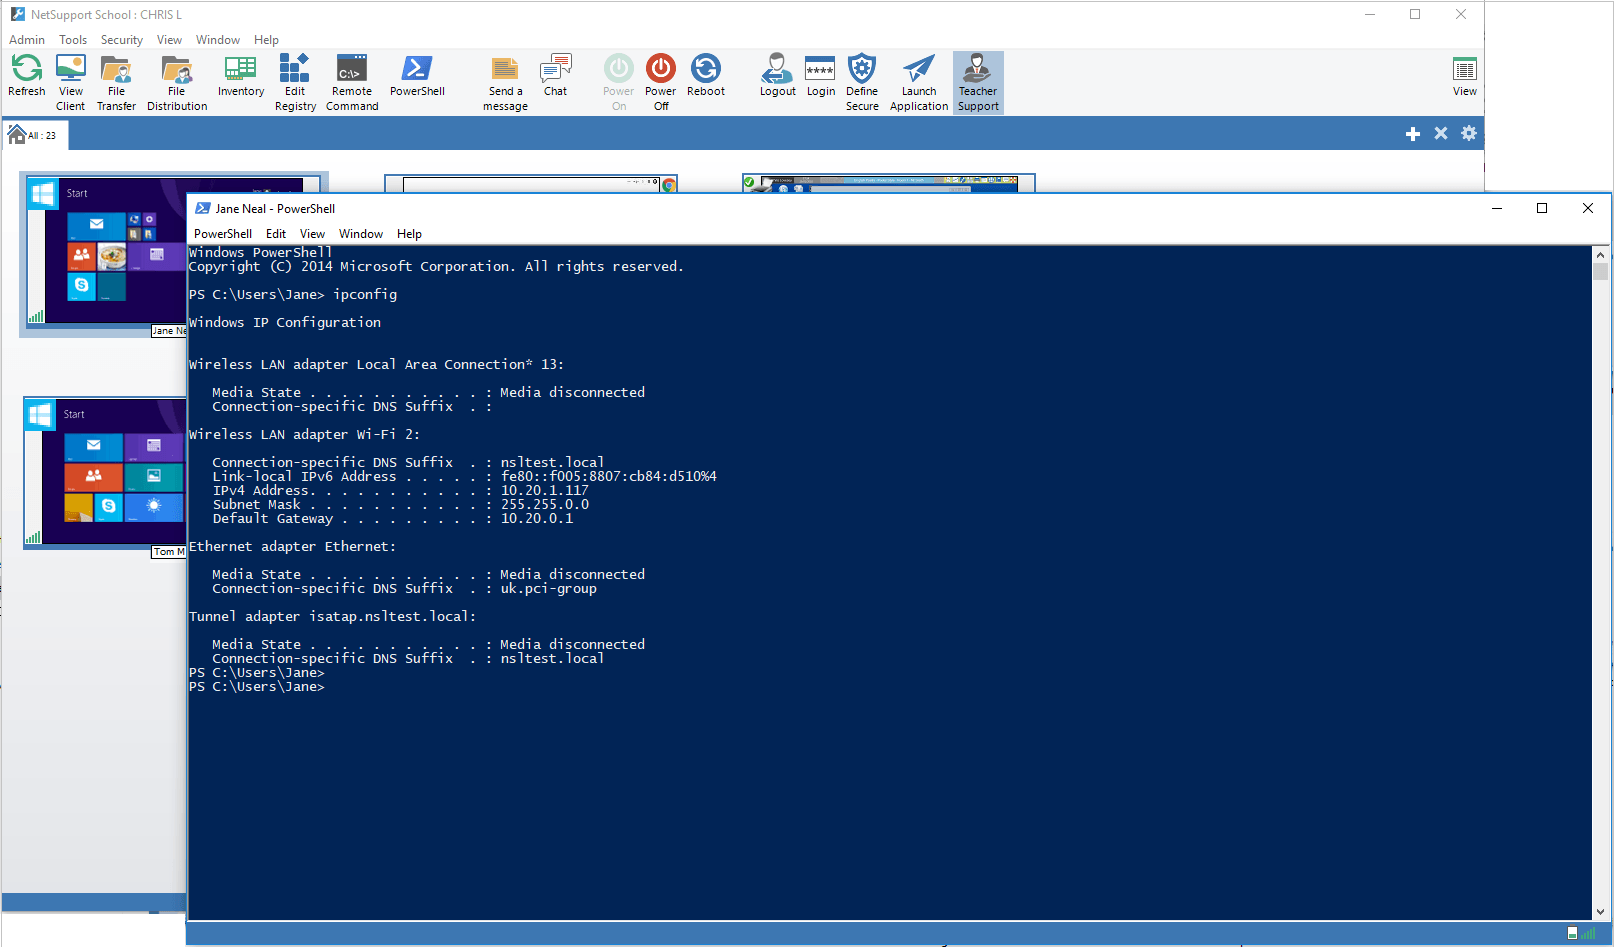 Tech Console - Launch a PowerShell window to execute PowerShell commands.